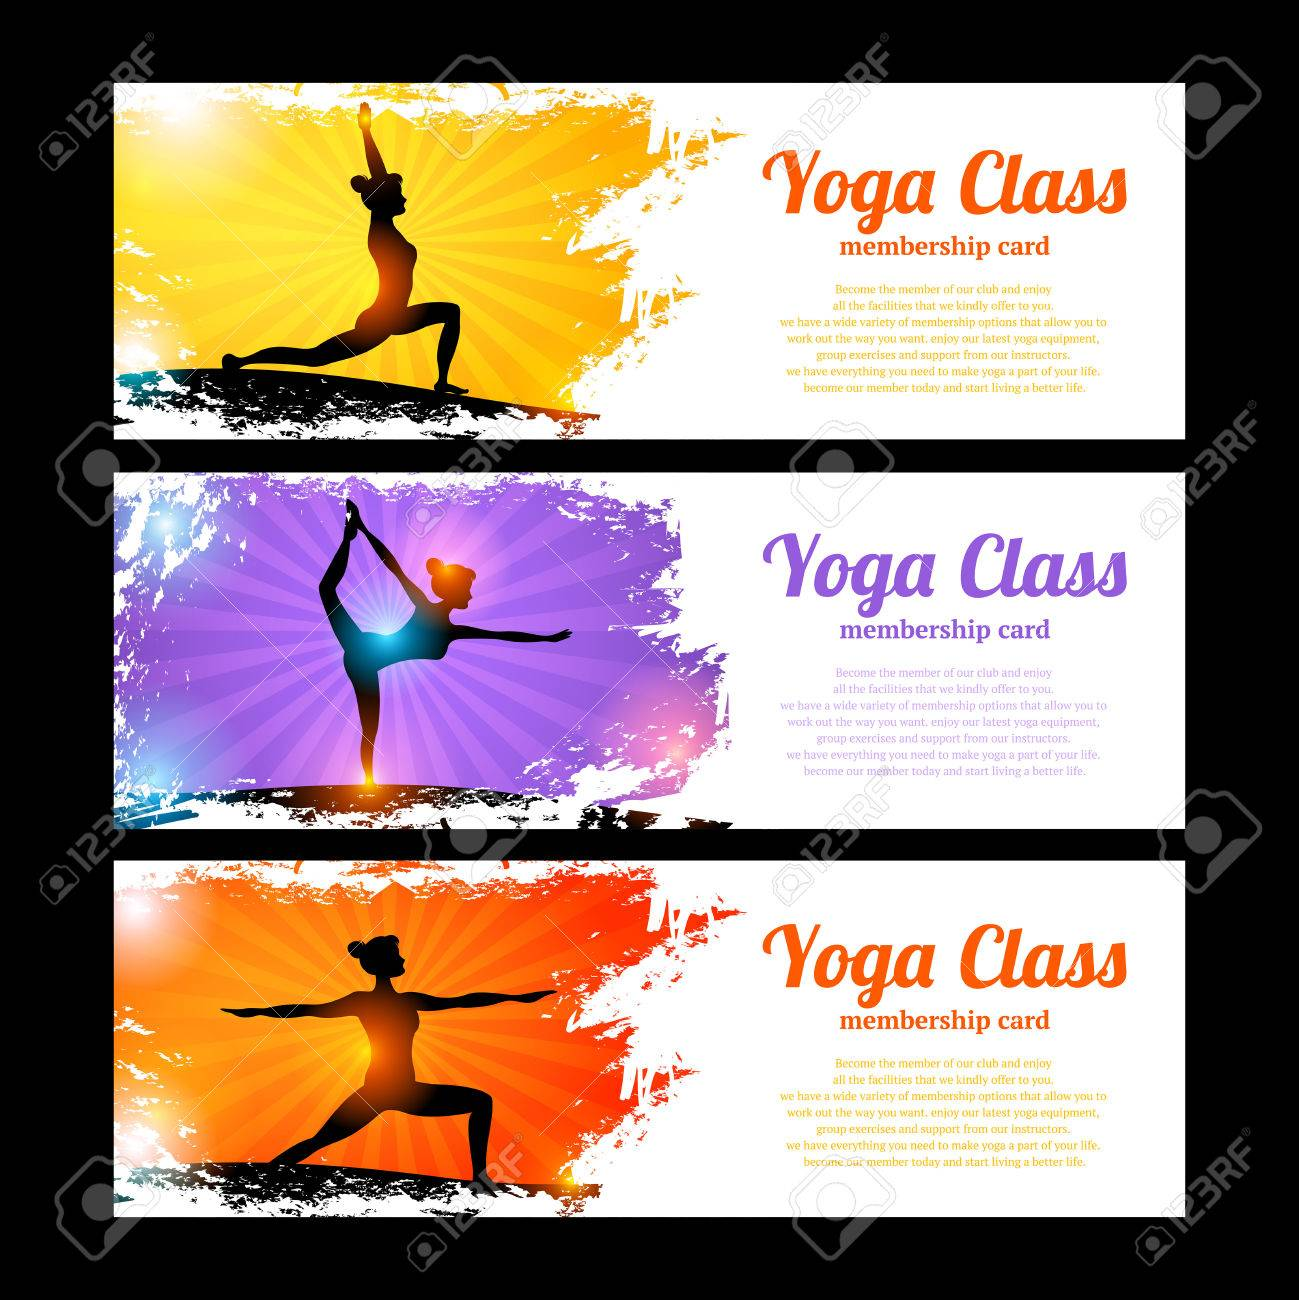 Yoga Class Horizontal Banner Set With Young Women Figures In Royalty Free Cliparts Vectors And Stock Illustration Image 37344733